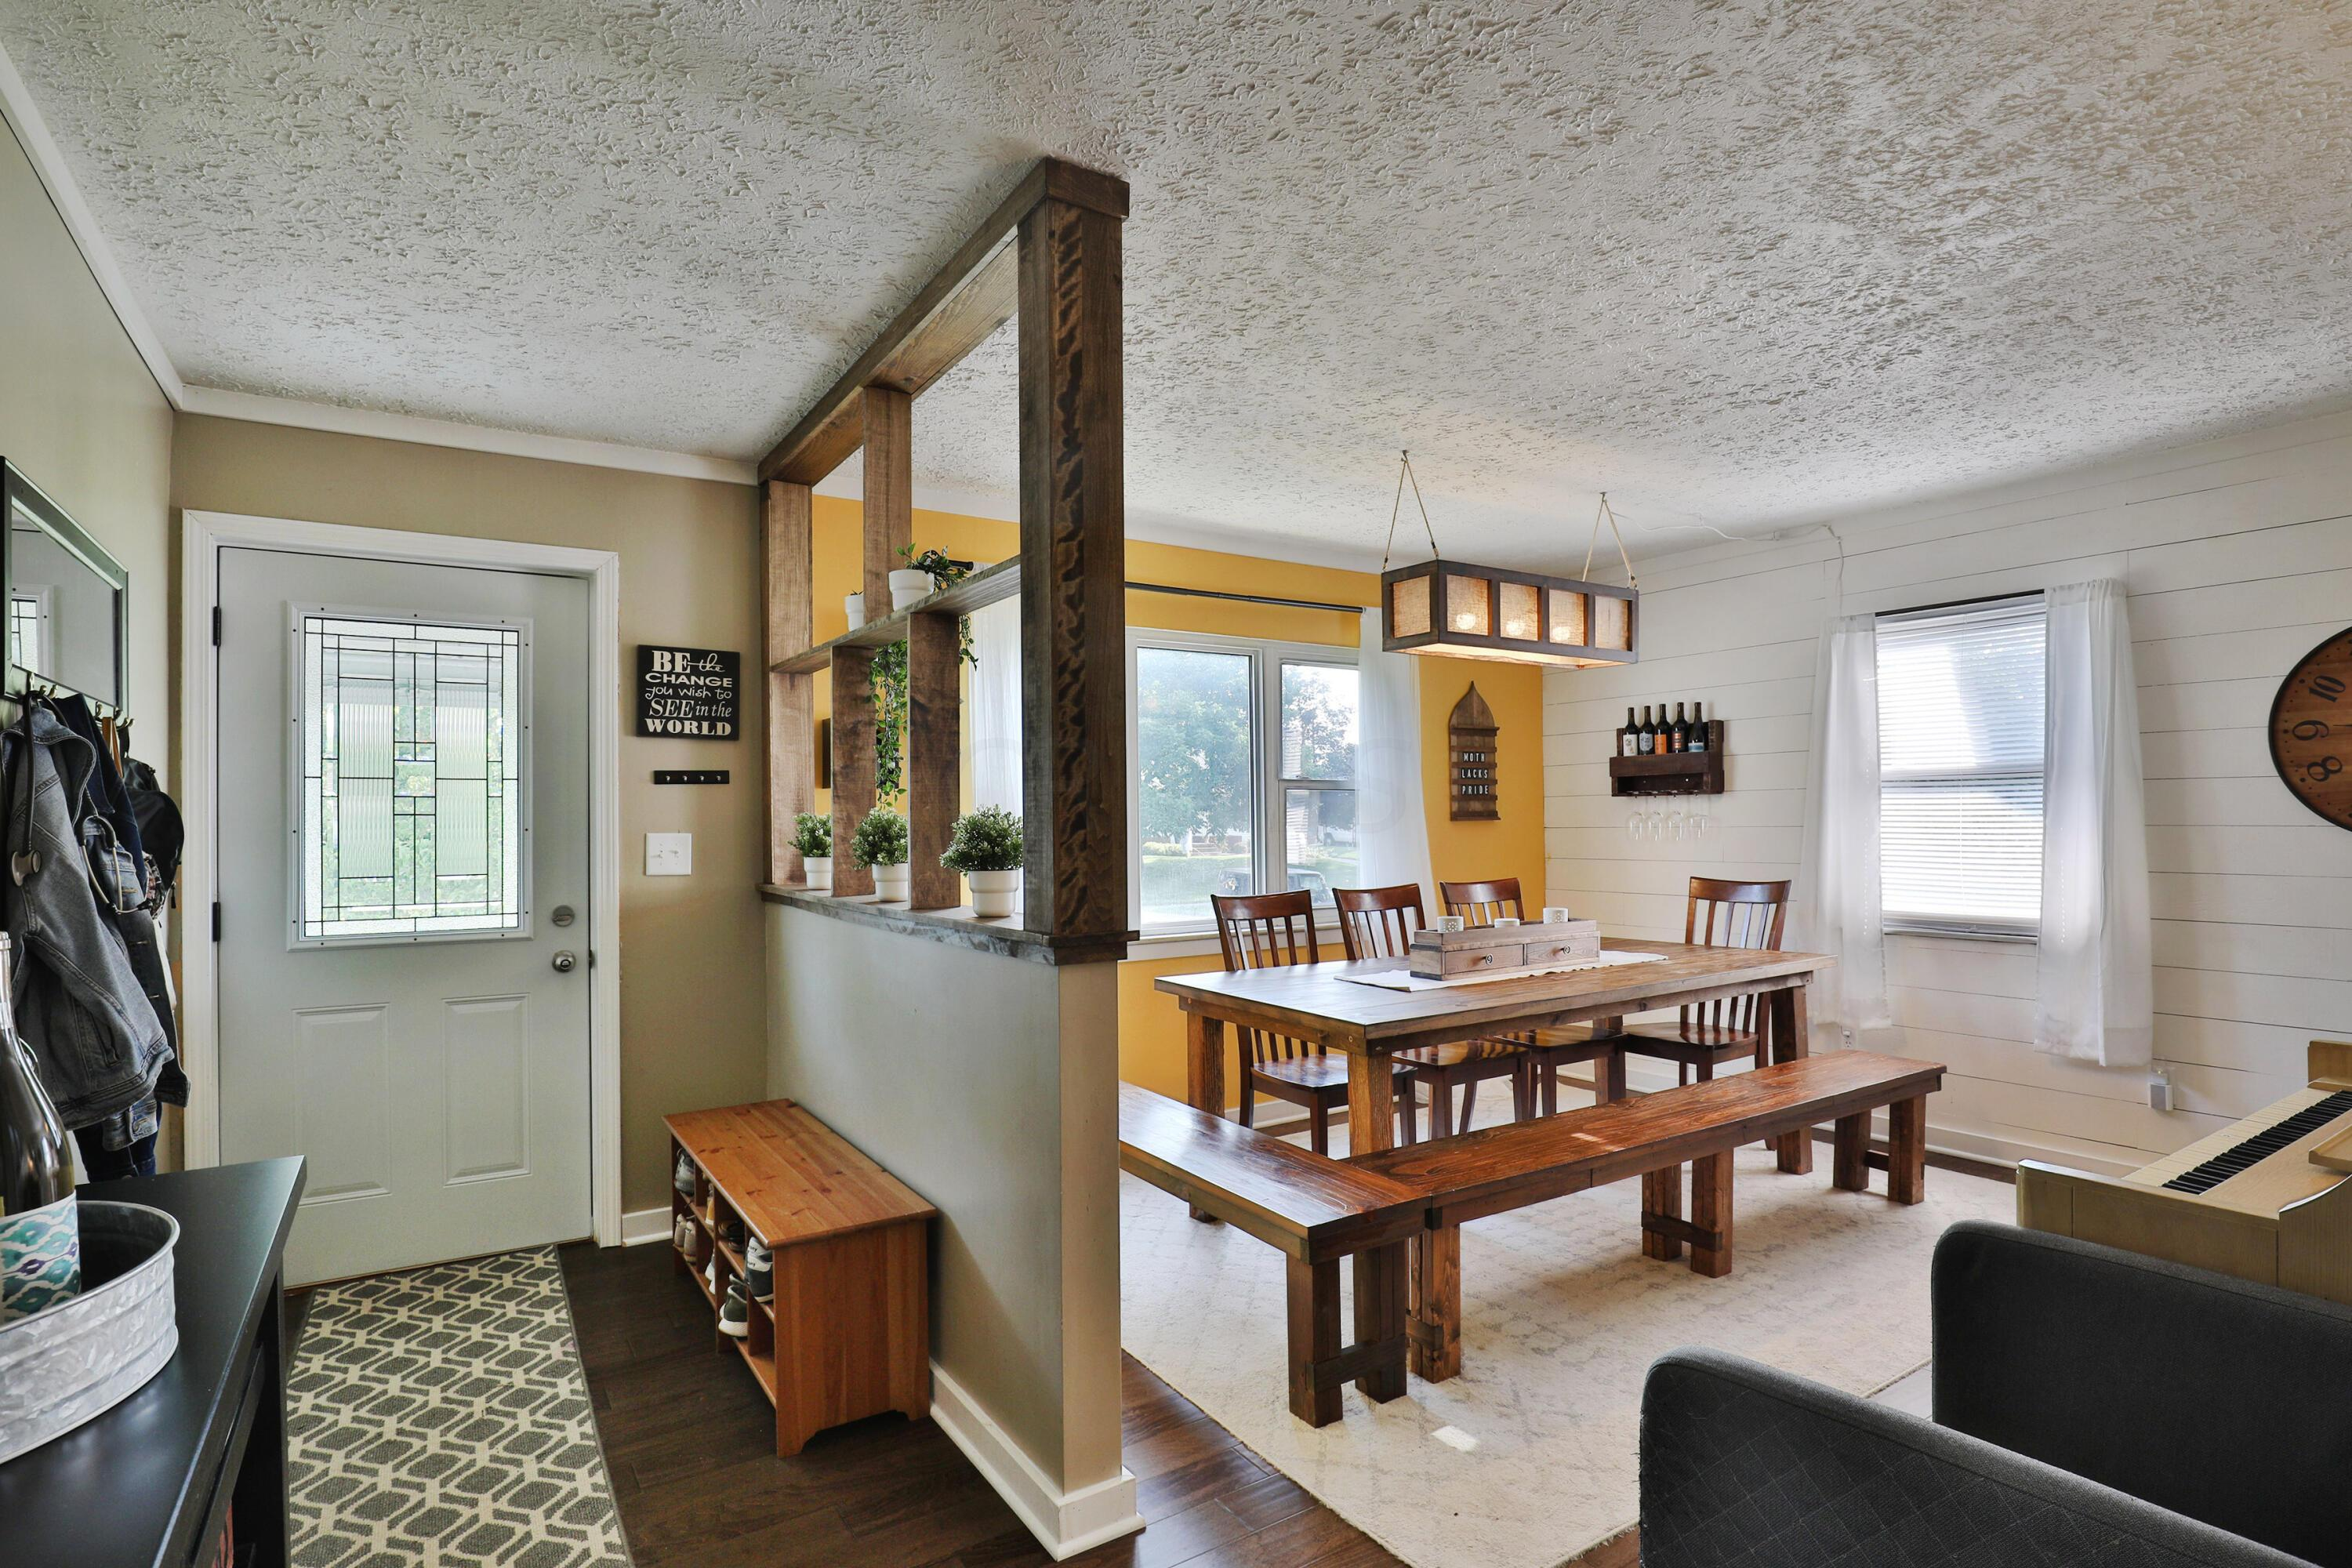 Dining room with shiplap wall feature